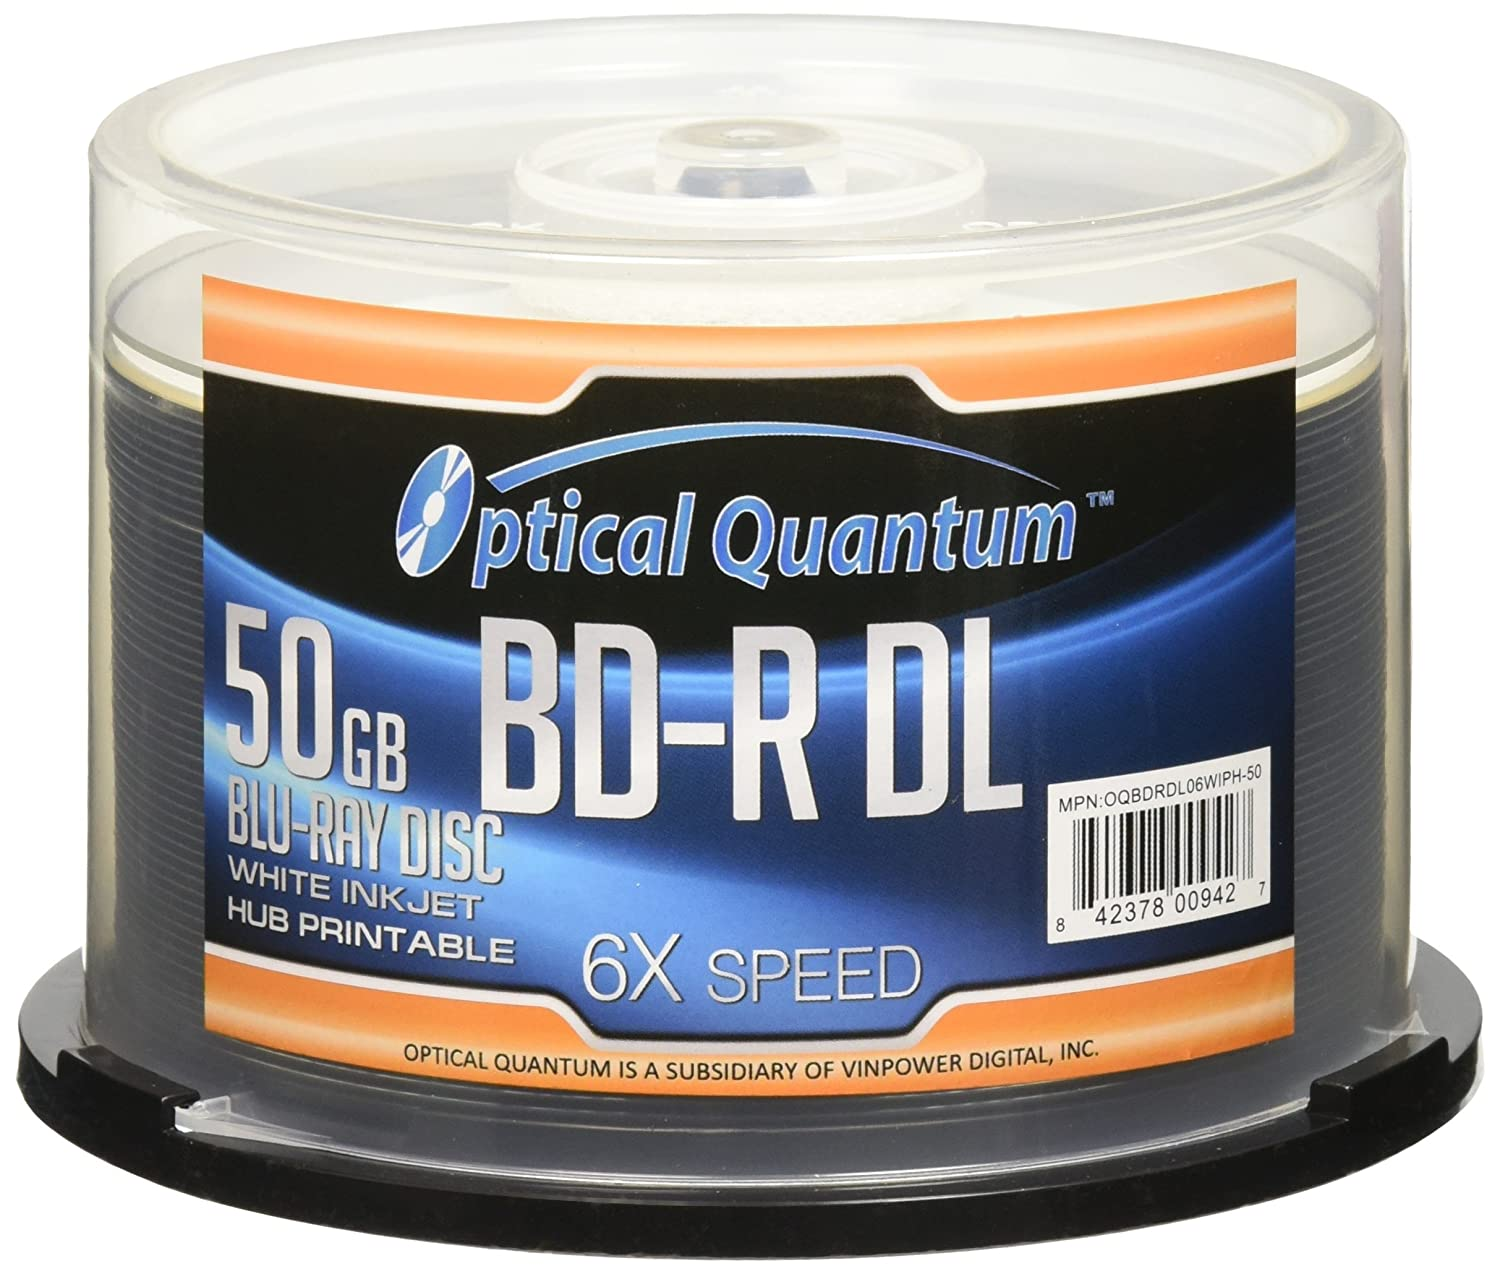 Optical Quantum 6X 50GB BD-R DL White Inkjet Printable Blu-ray Double Layer Recordable Media , 50-Disc Spindle OQBDRDL06WIP-50